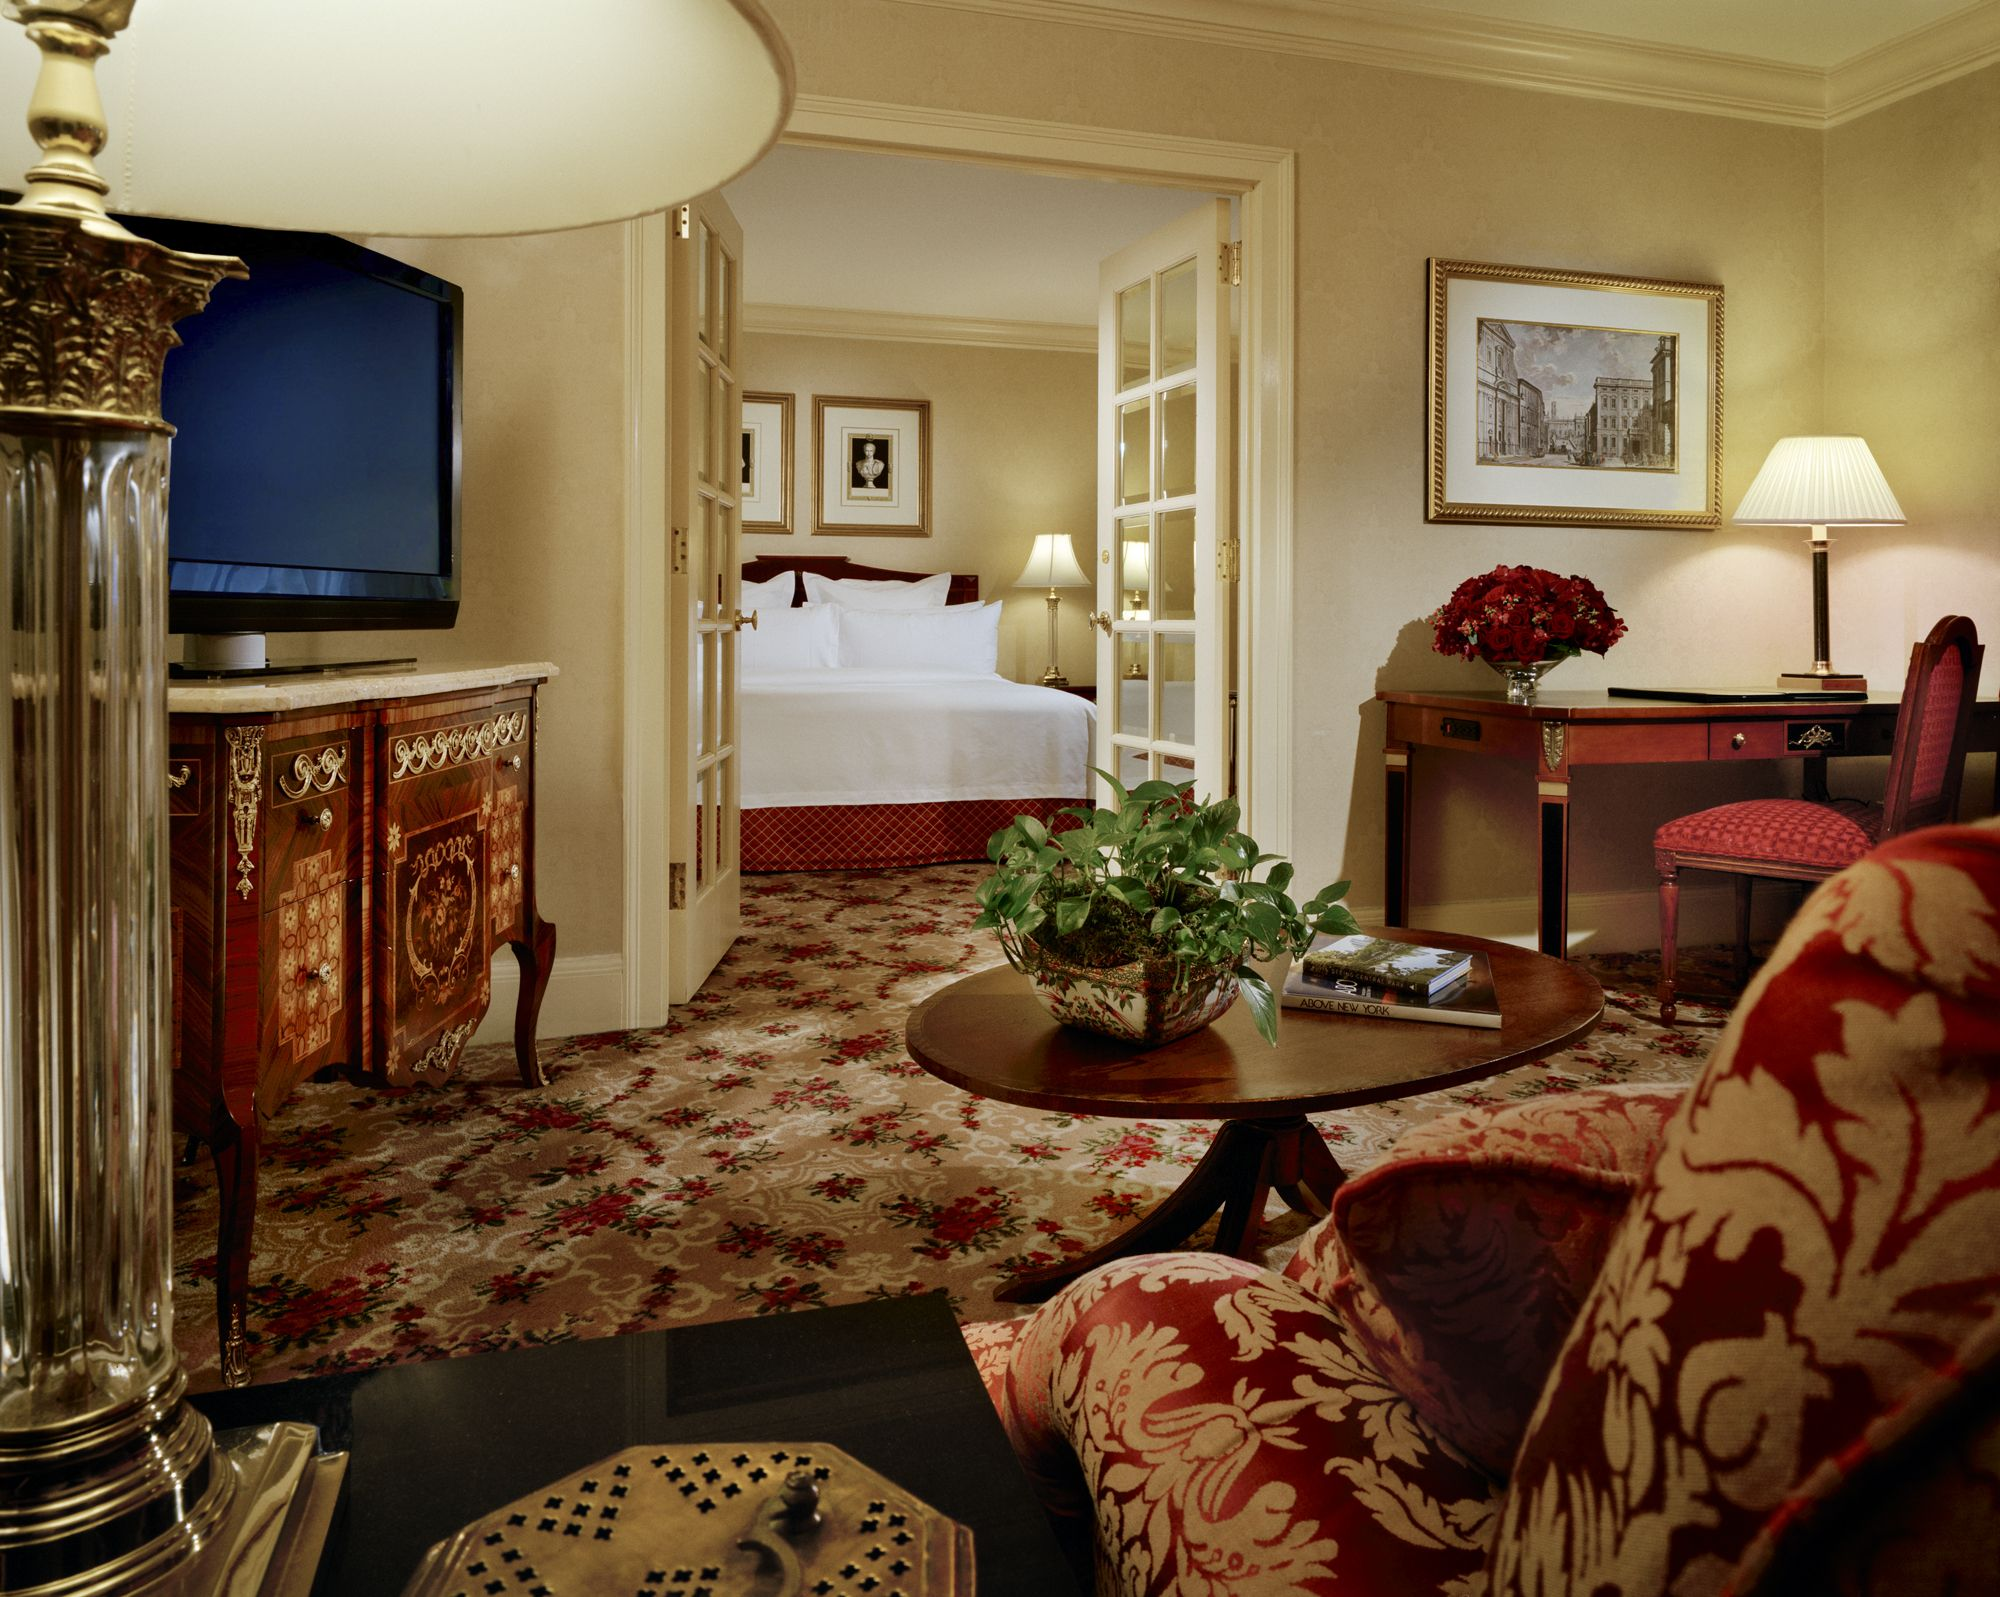 Executive Suites From 400 Square Feet (38 M2)  King Or Queen. Our · Astoria  NycHotel ...